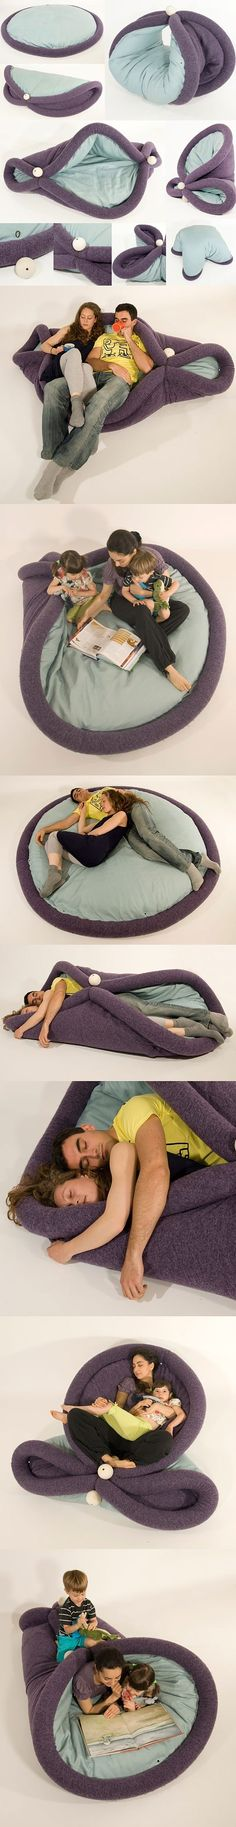 Can we say cuddle! It would be awesome for a playroom someday too